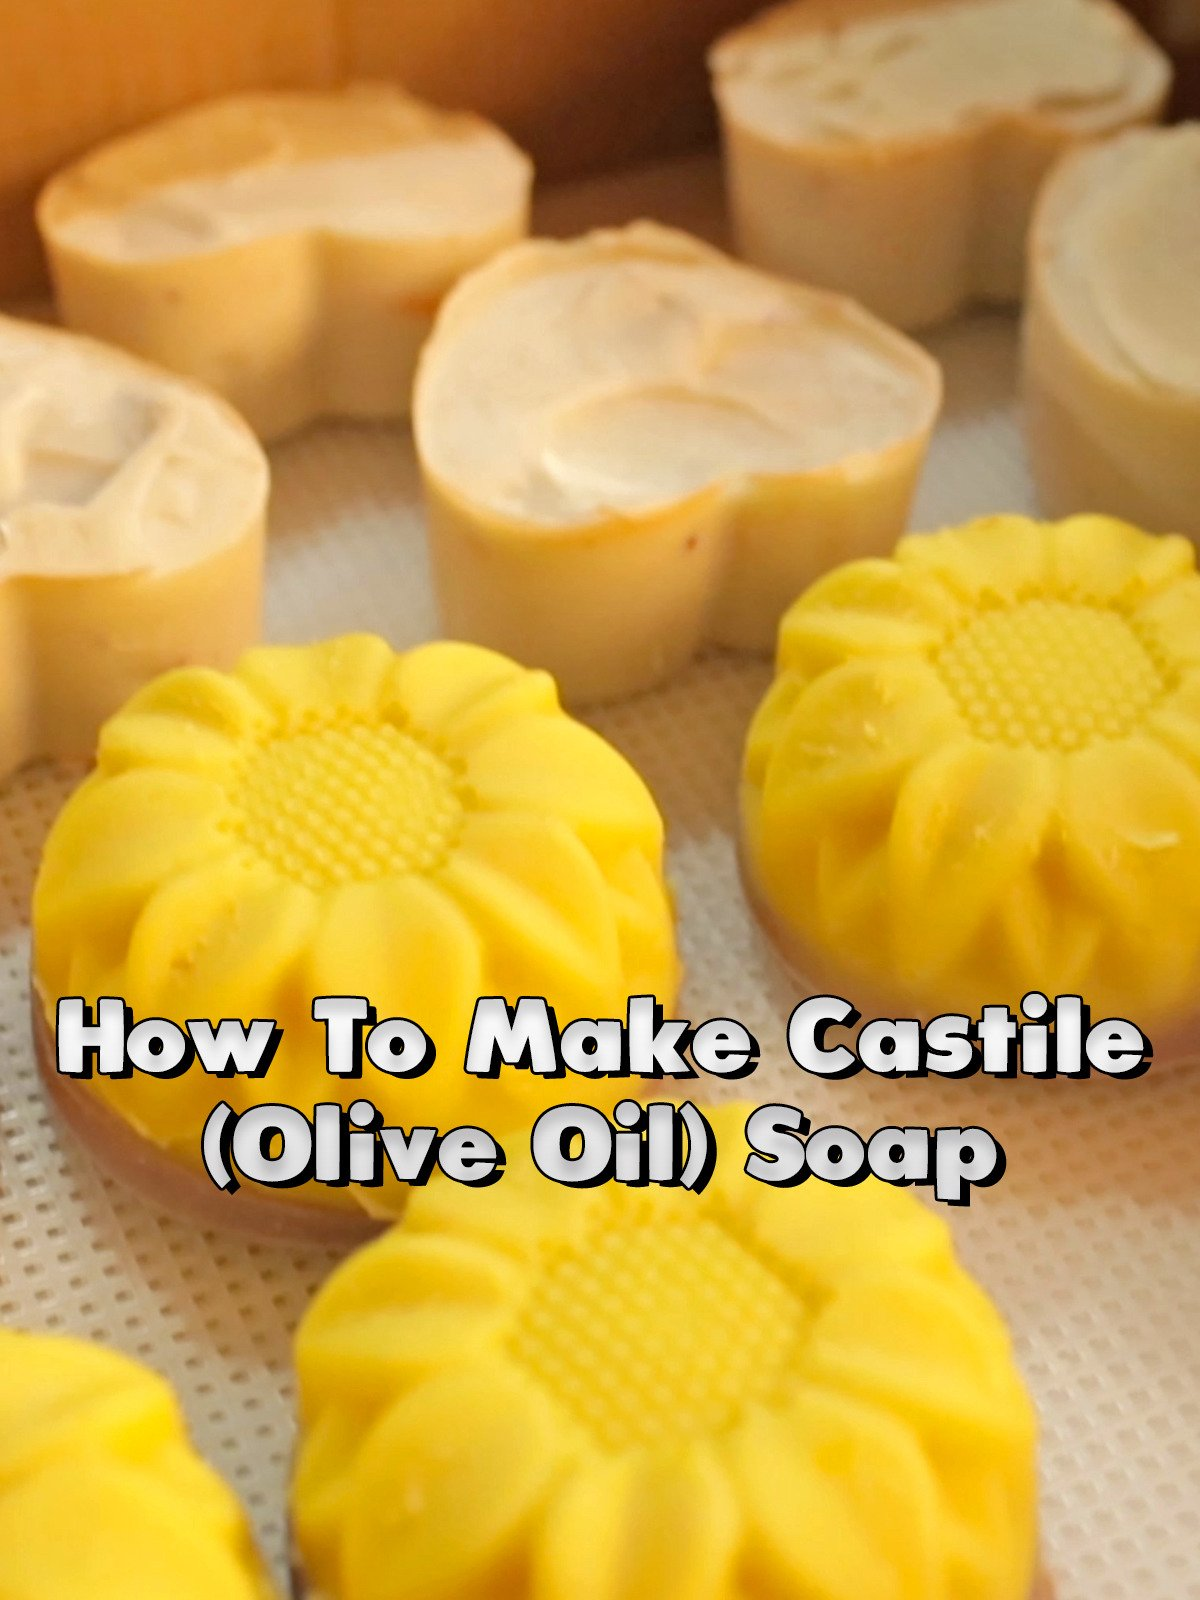 How To Make Castile (Olive Oil) Soap on Amazon Prime Instant Video UK